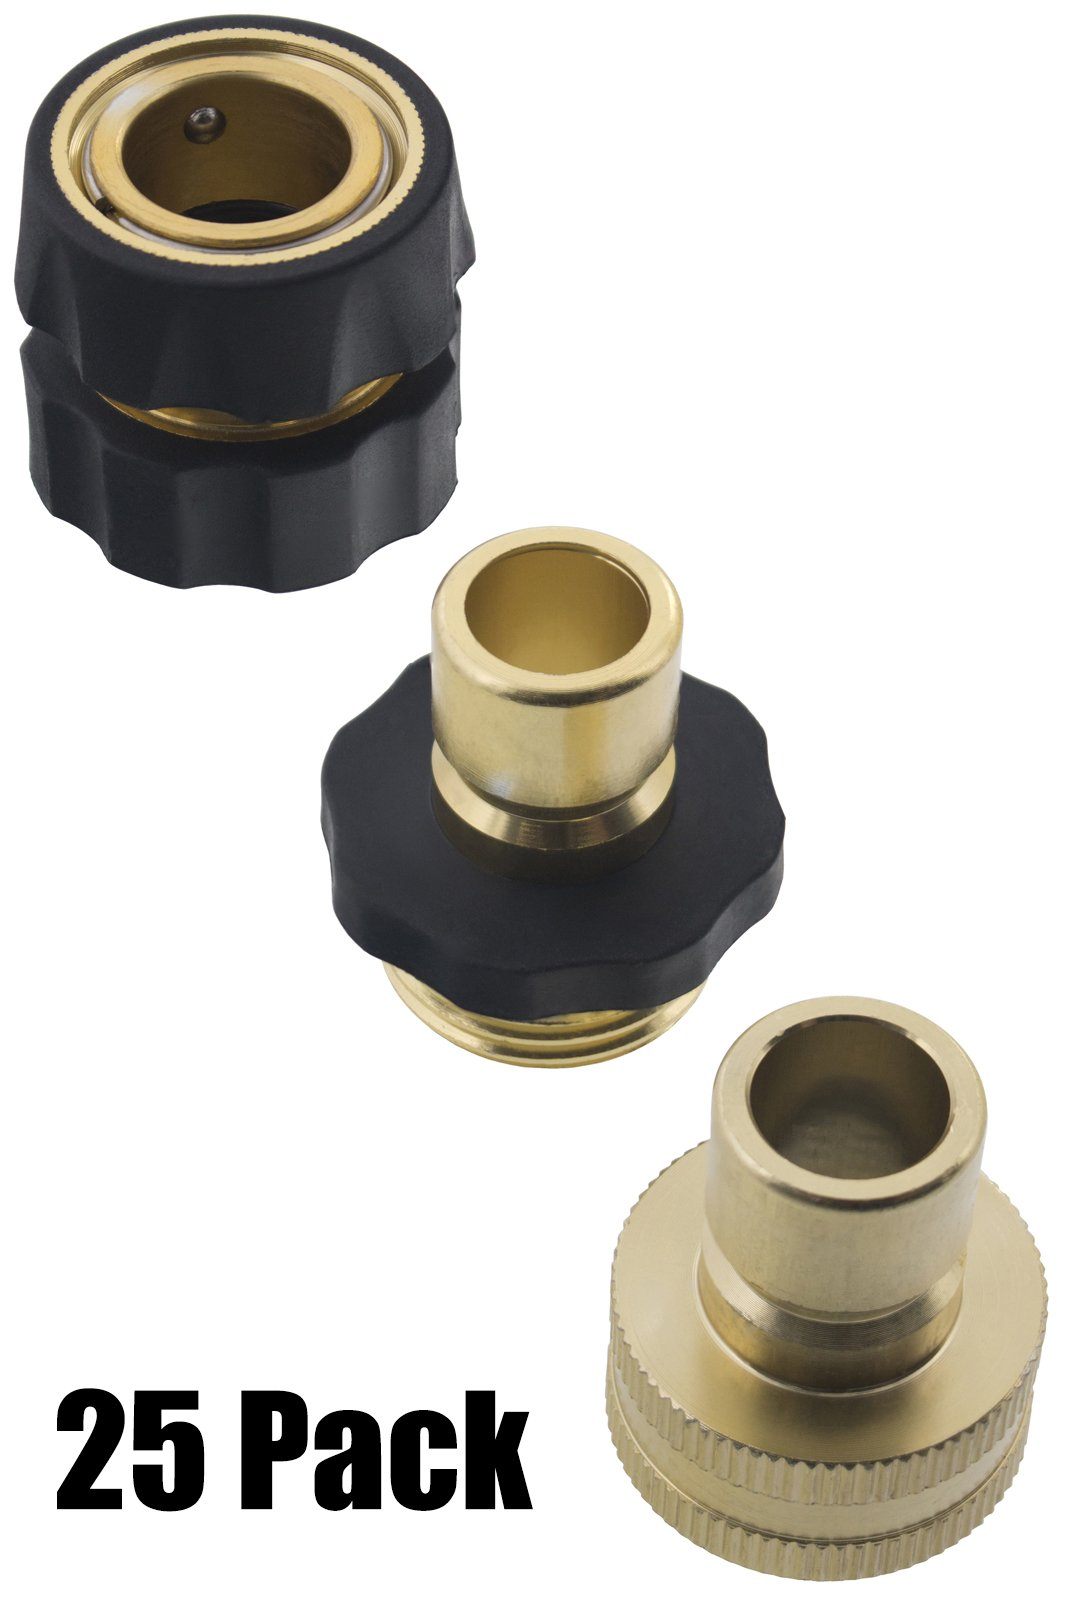 Erie Tools 25 Garden Hose Pressure Washer Quick Connector Kit with Male Female Connections and Nylon Grip by Erie Tools